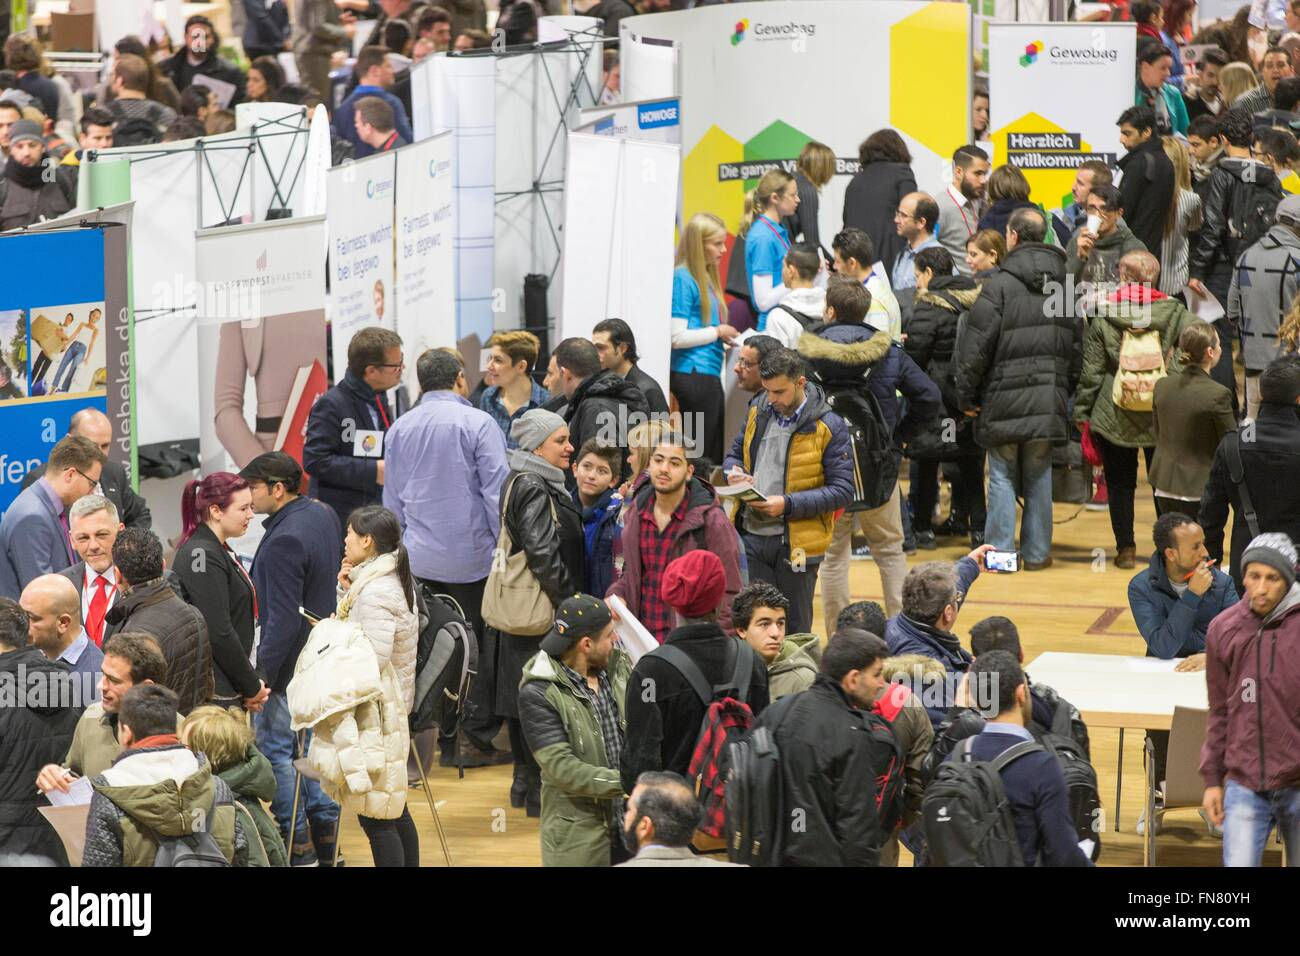 Migrants and refugees walk around stands offering jobs and education at a job fair for refugees in Berlin, 29 February Stock Photo